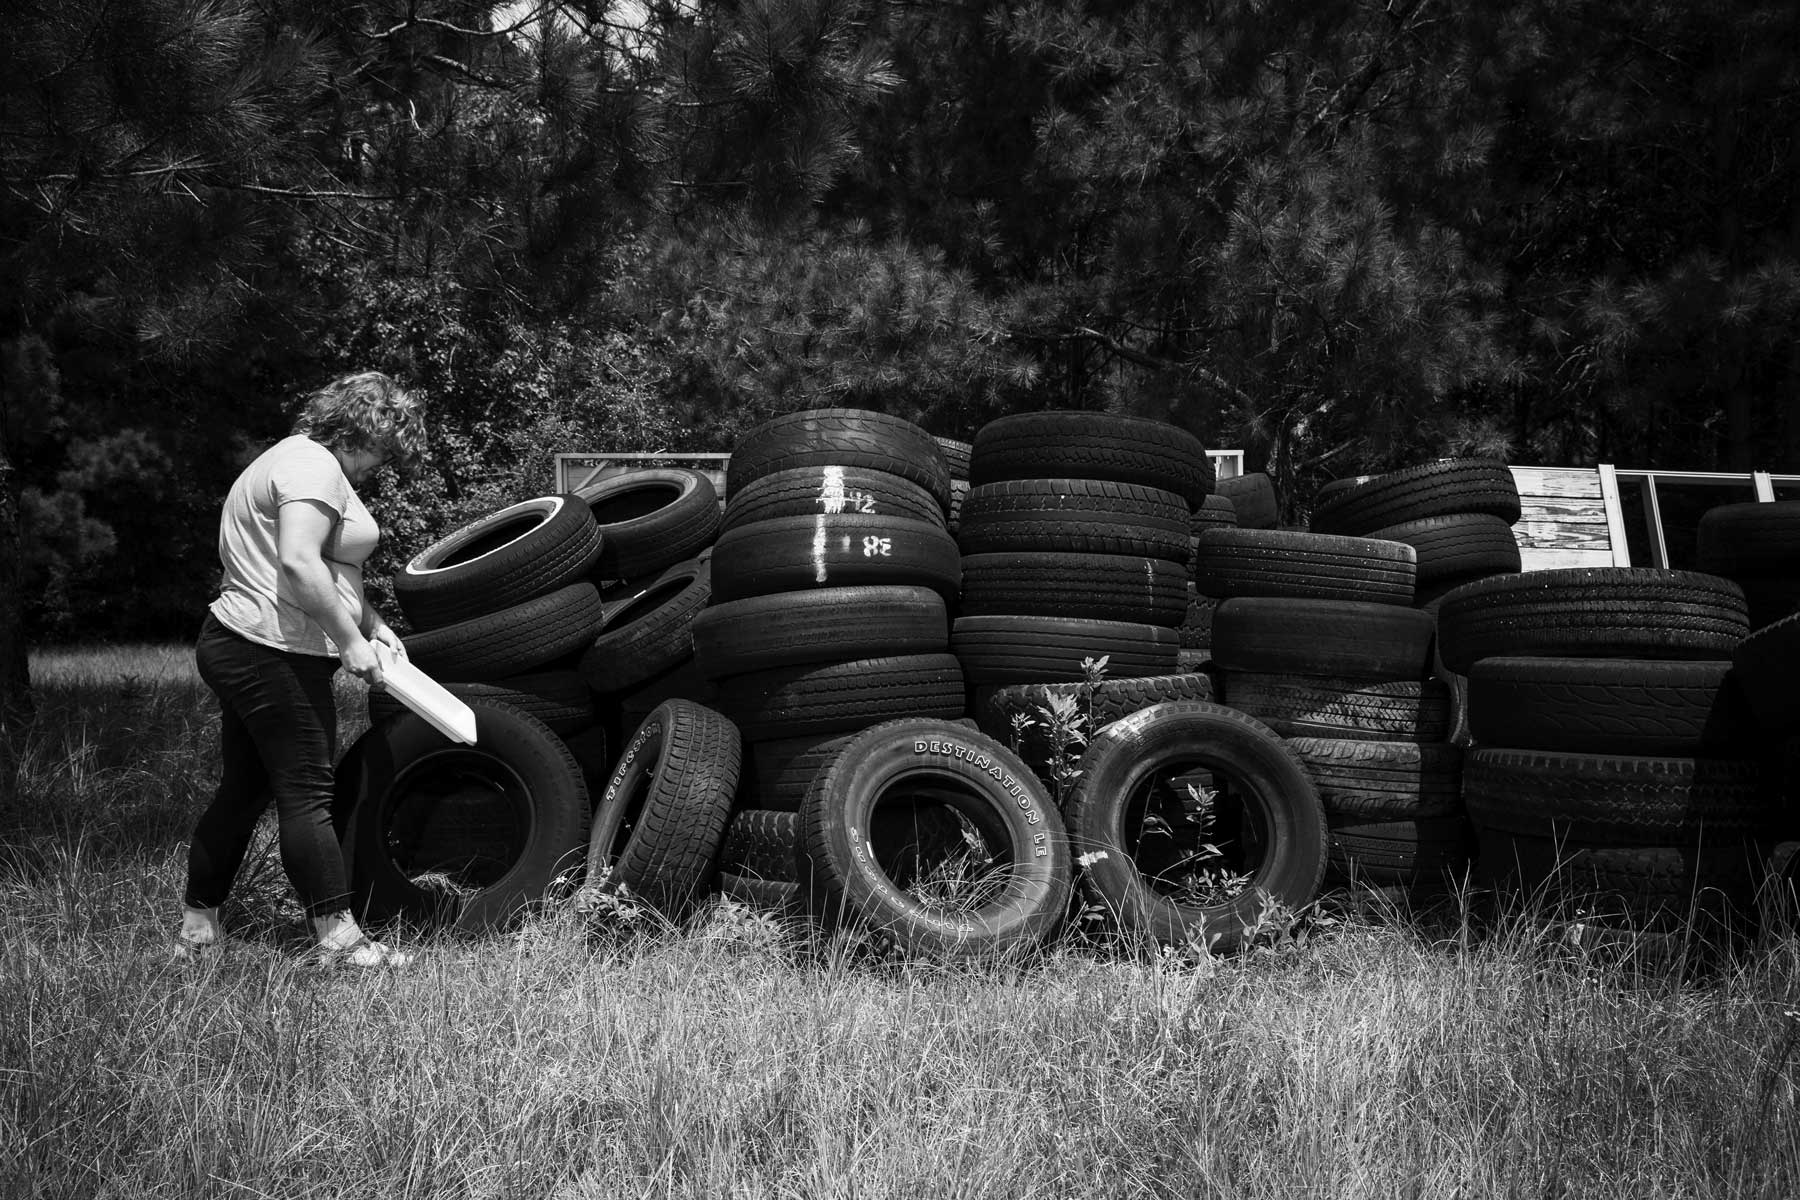 Catherine Dean, 23, a graduate student, checks standing water from inside of tires for larvae of the Asian tiger mosquito at a research facility at the University of Southern Mississippi in Hattiesburg.